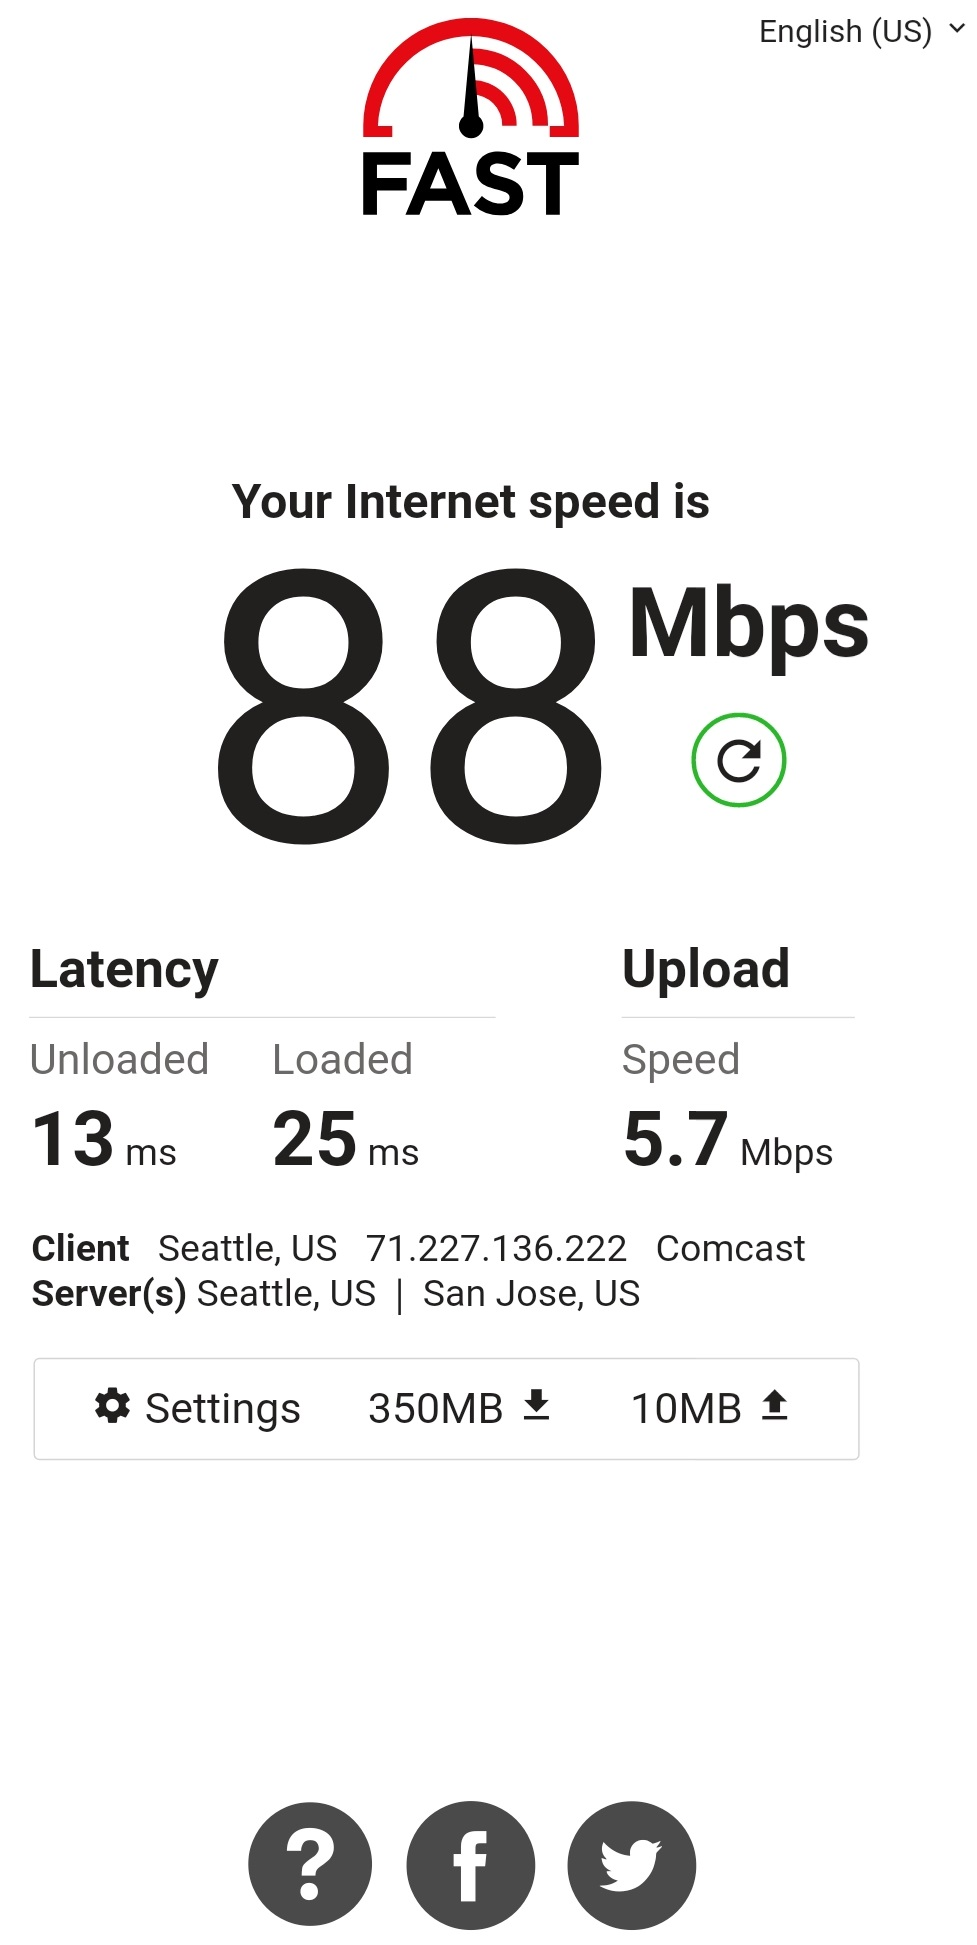 AFast.com Internet Speed Test on Mobile